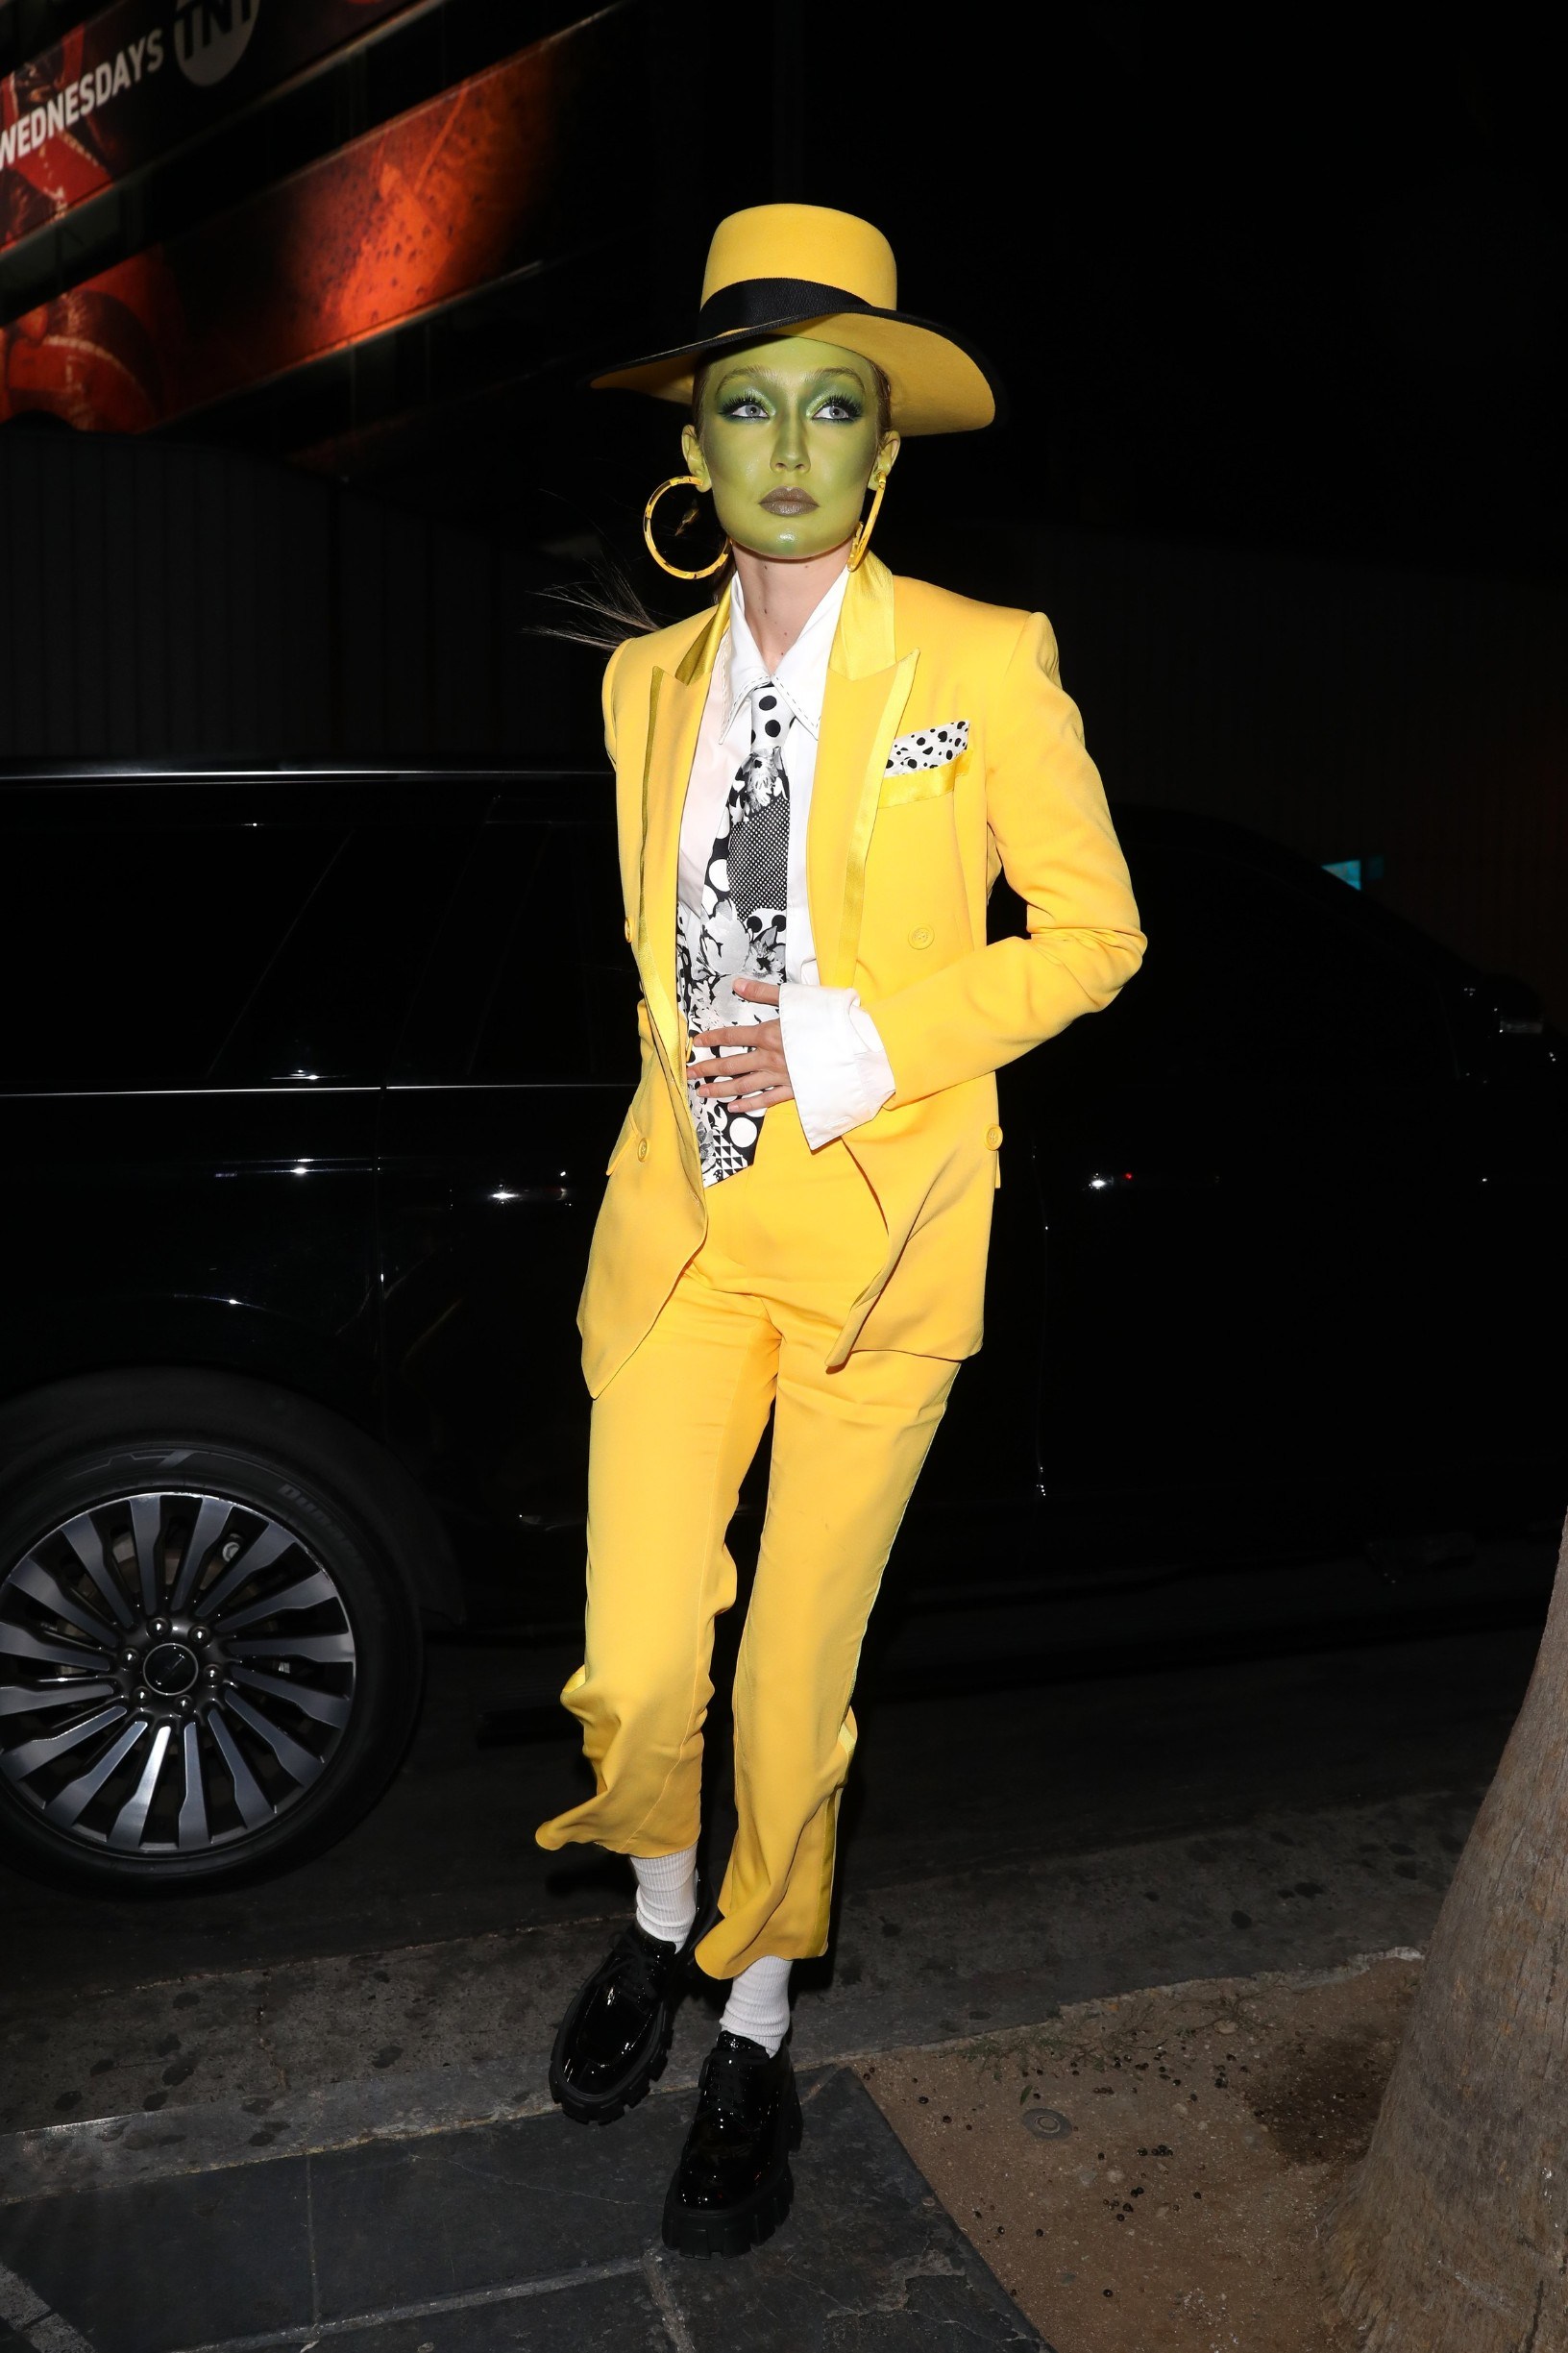 Gigi Hadid is dressed as Jim Carrey's character The Mask as she goes Kendall Jenner's Halloween party at Blind Dragon in West Hollywood. 31 Oct 2019, Image: 480358969, License: Rights-managed, Restrictions: World Rights, Model Release: no, Credit line: iamKevinWong.com /MEGA / Mega Agency / Profimedia